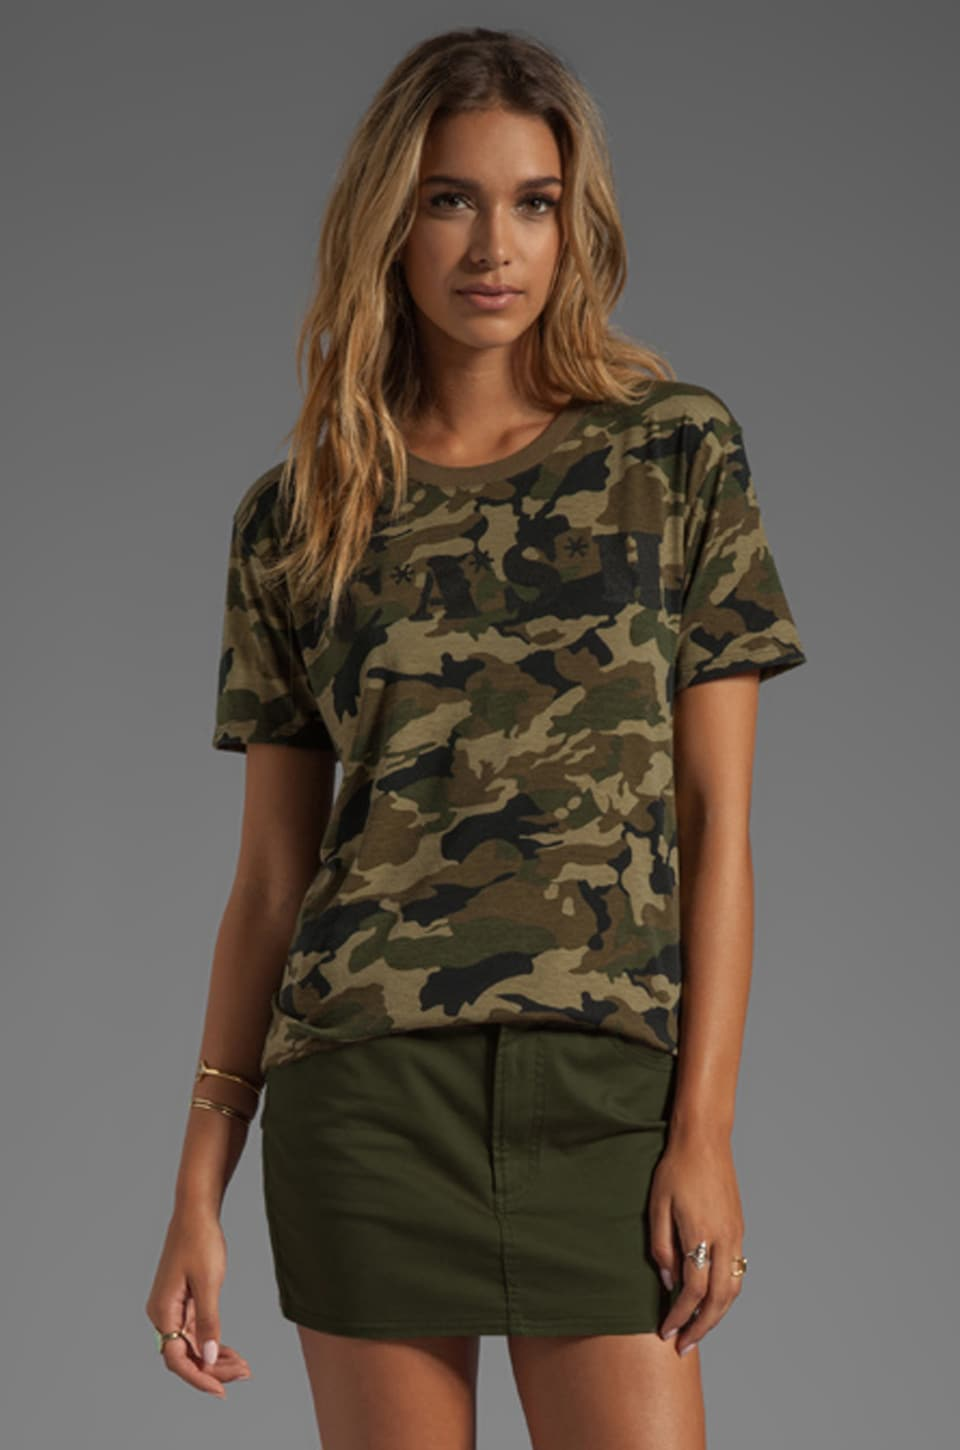 Lovers + Friends CASH Relaxed Tee in Camo